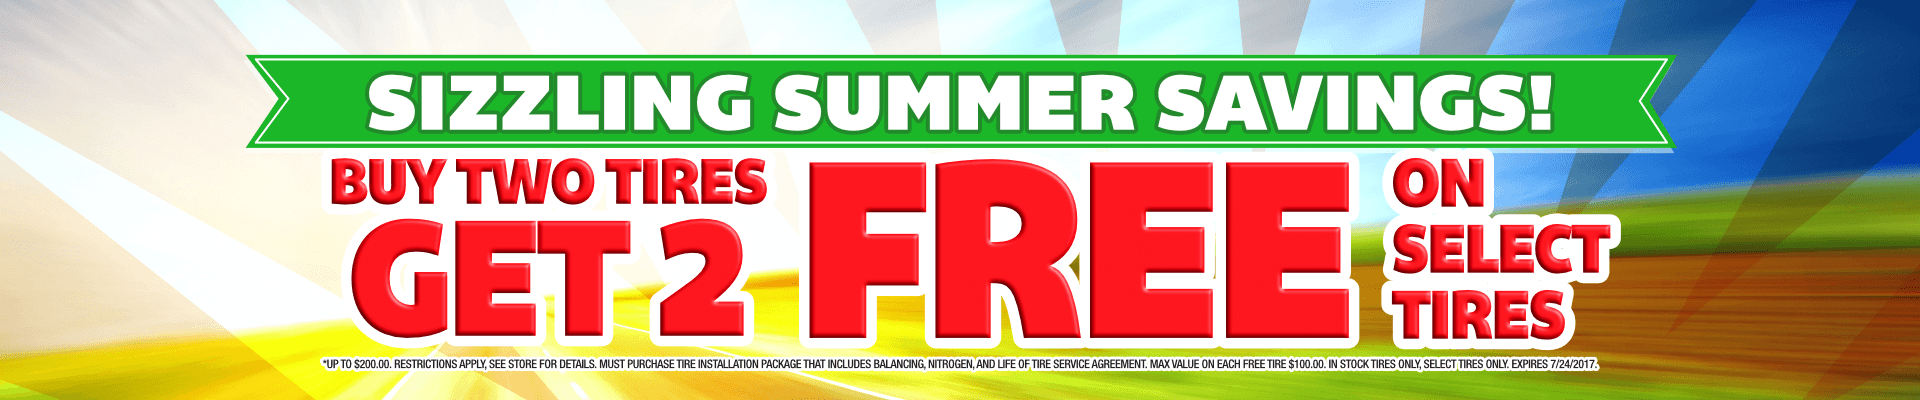 Buy 2 Tires Get 2 Tires Free- Discount Tire Centers